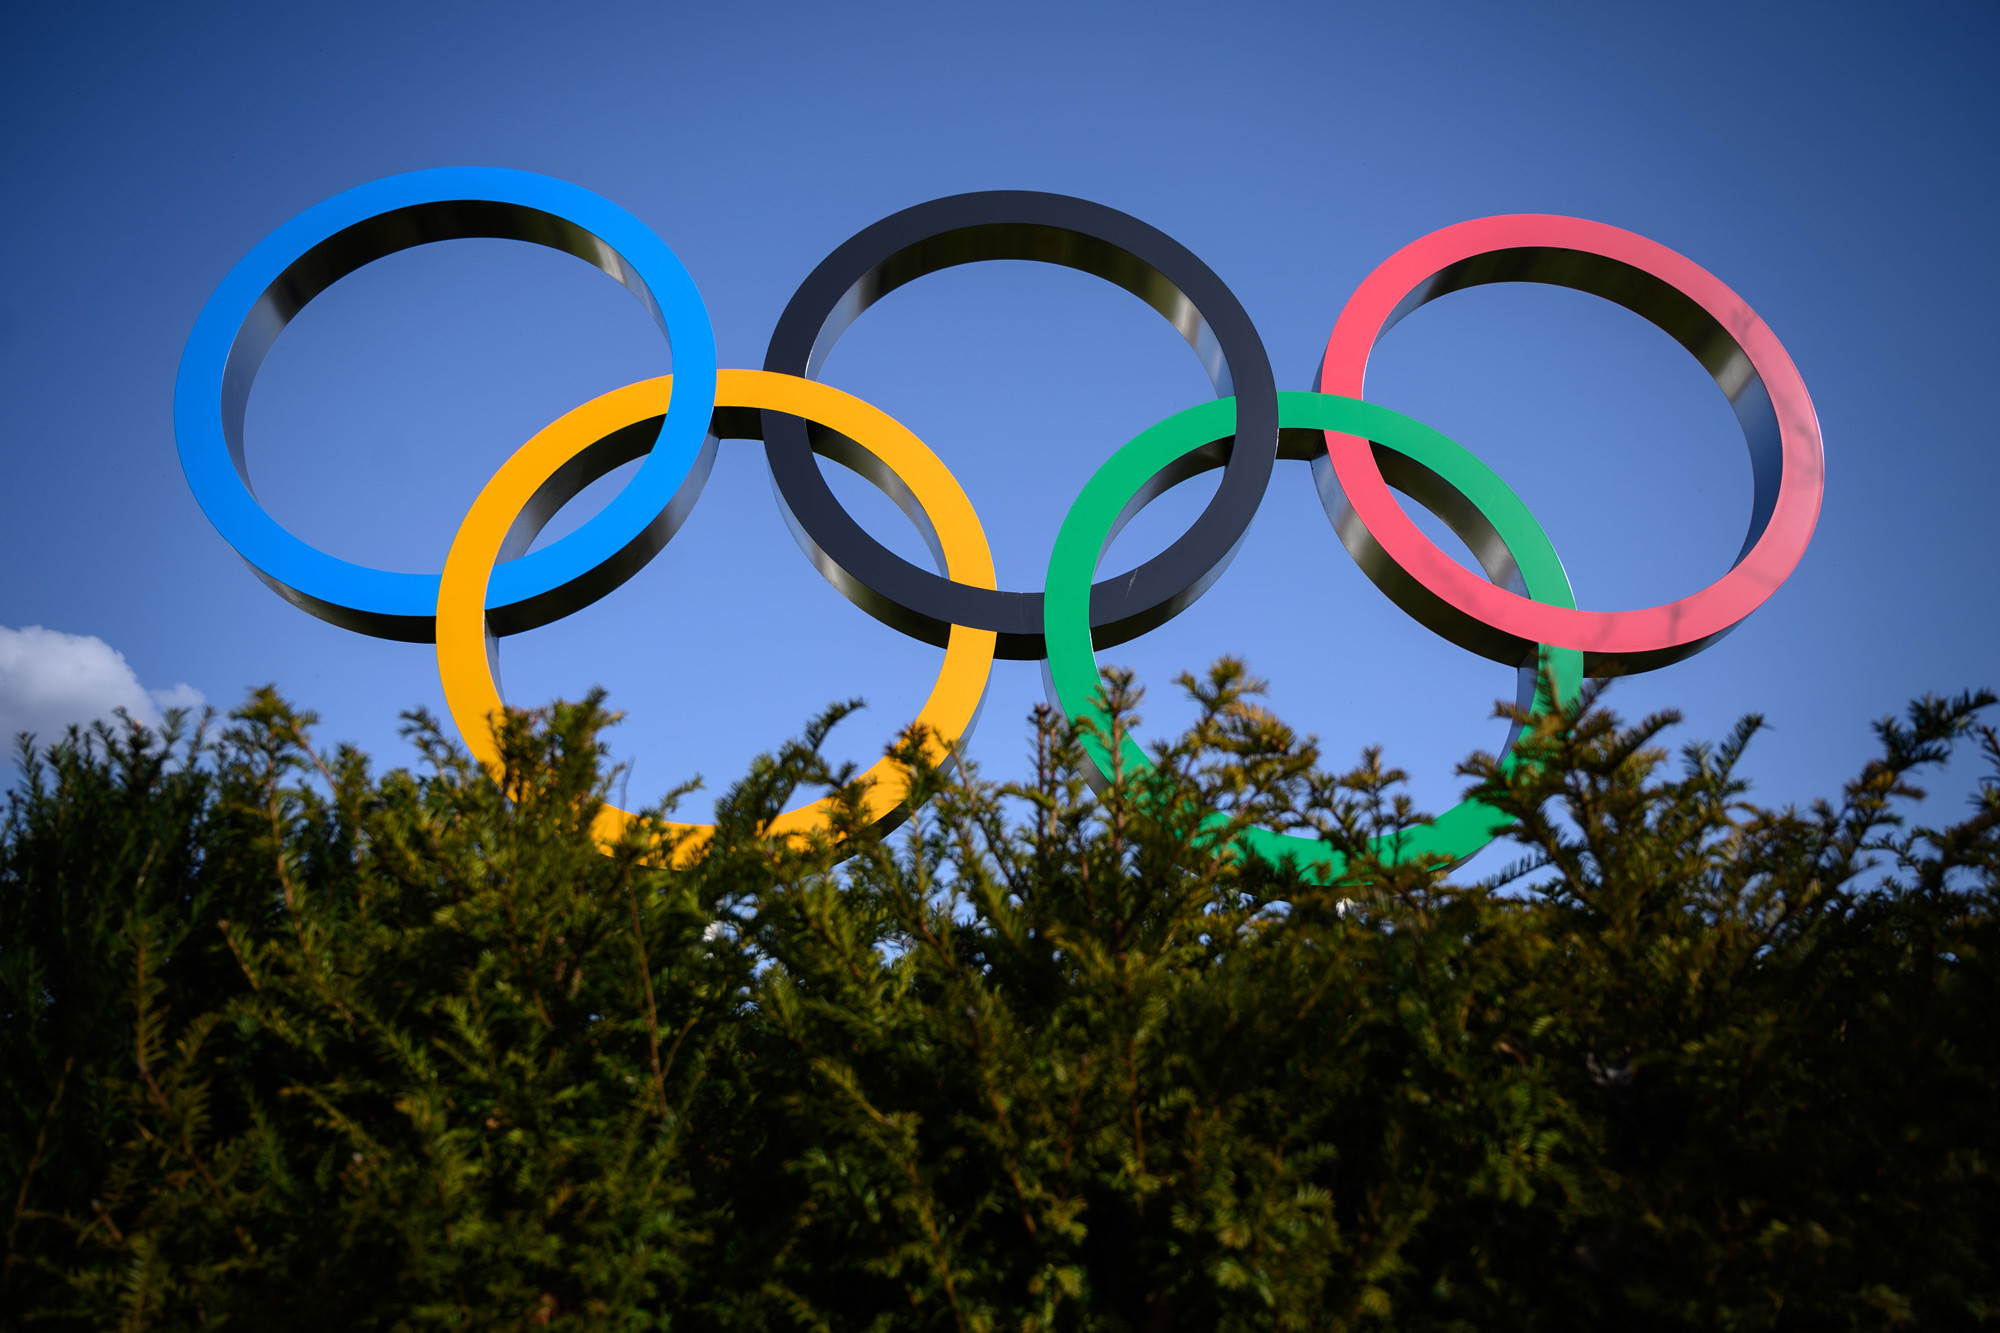 The Olympic Rings are pictured next to the headquarters of the International Olympic Committee (IOC) in Lausanne on March 21, 2020, as doubts increase over whether Tokyo can safely host the summer Games amid the spread of the COVID-19. - The global sporting calendar has been swept away by the coronavirus pandemic but the International Olympic Committee has insisted the Tokyo Games will go ahead in four months despite growing calls for a postponement. (Photo by Fabrice COFFRINI / AFP) (Photo by FABRICE COFFRINI/AFP via Getty Images)